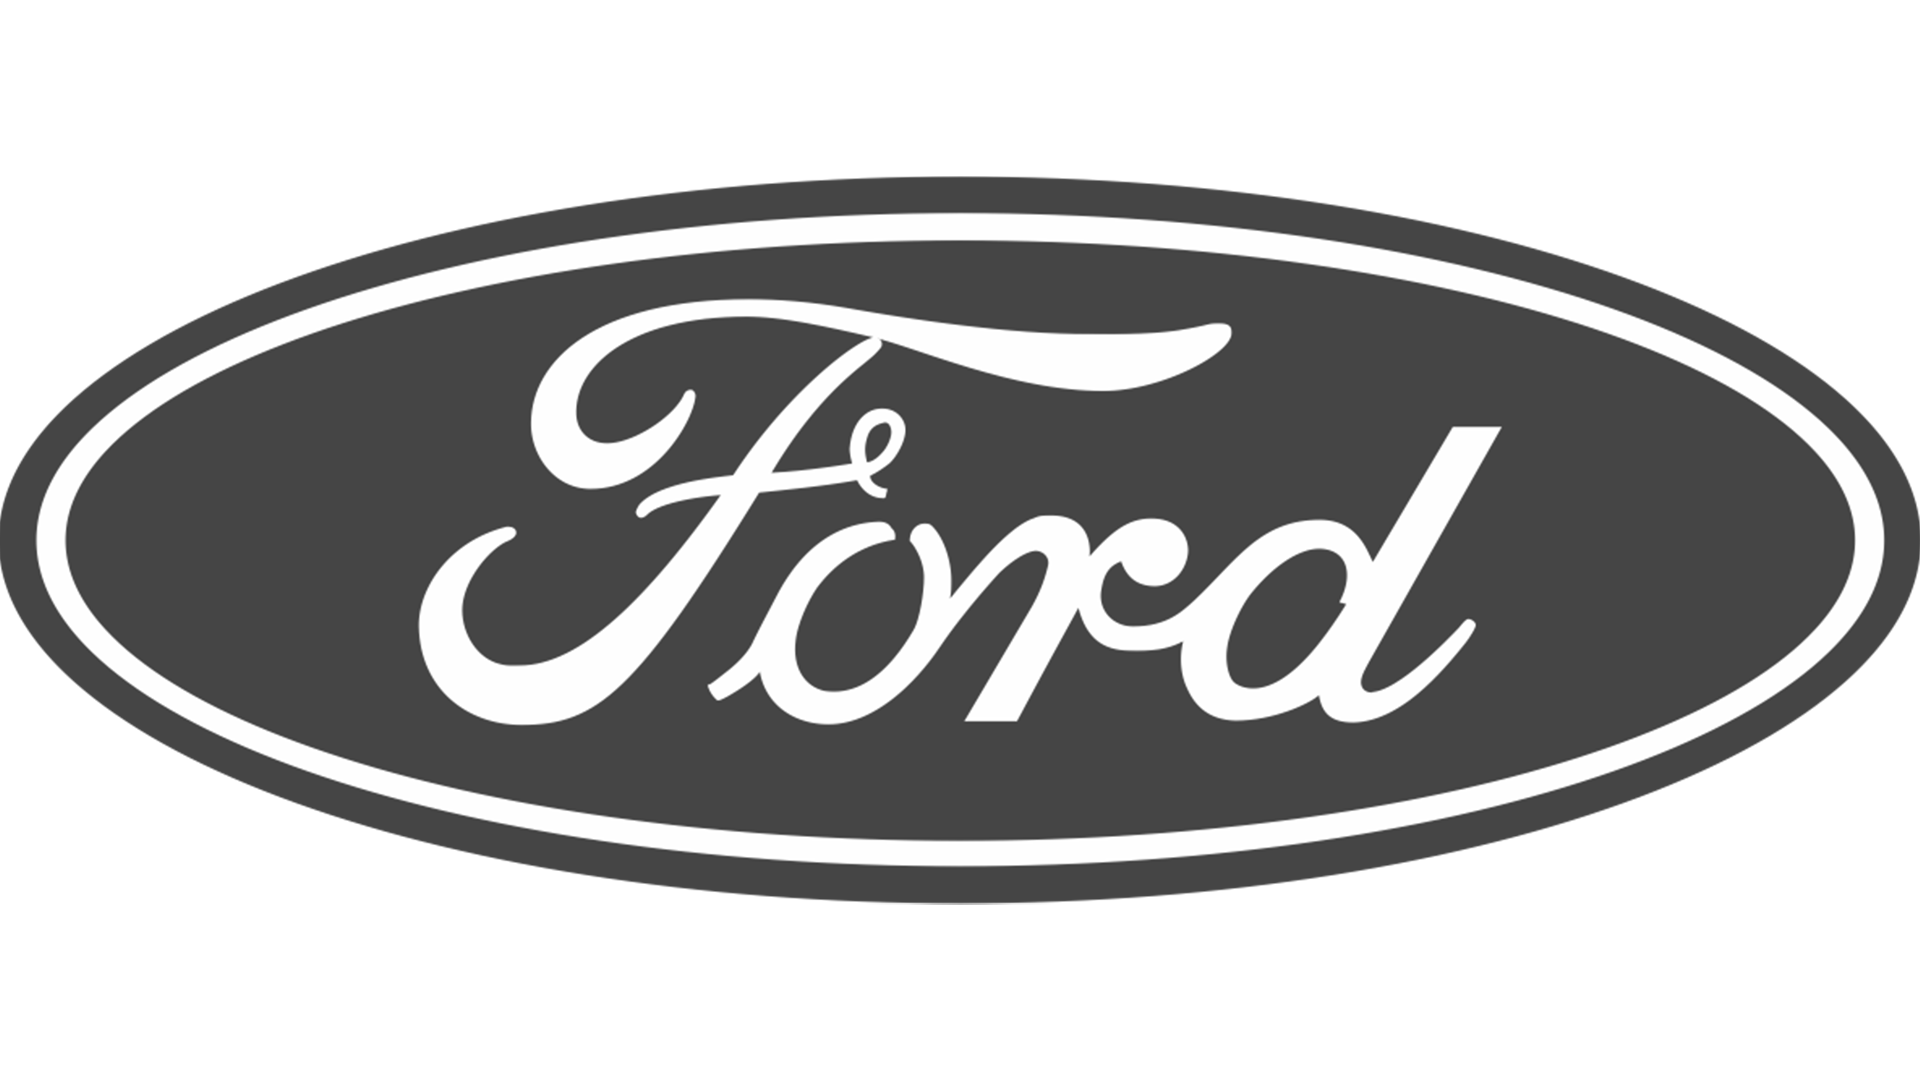 Ford Website logo.png